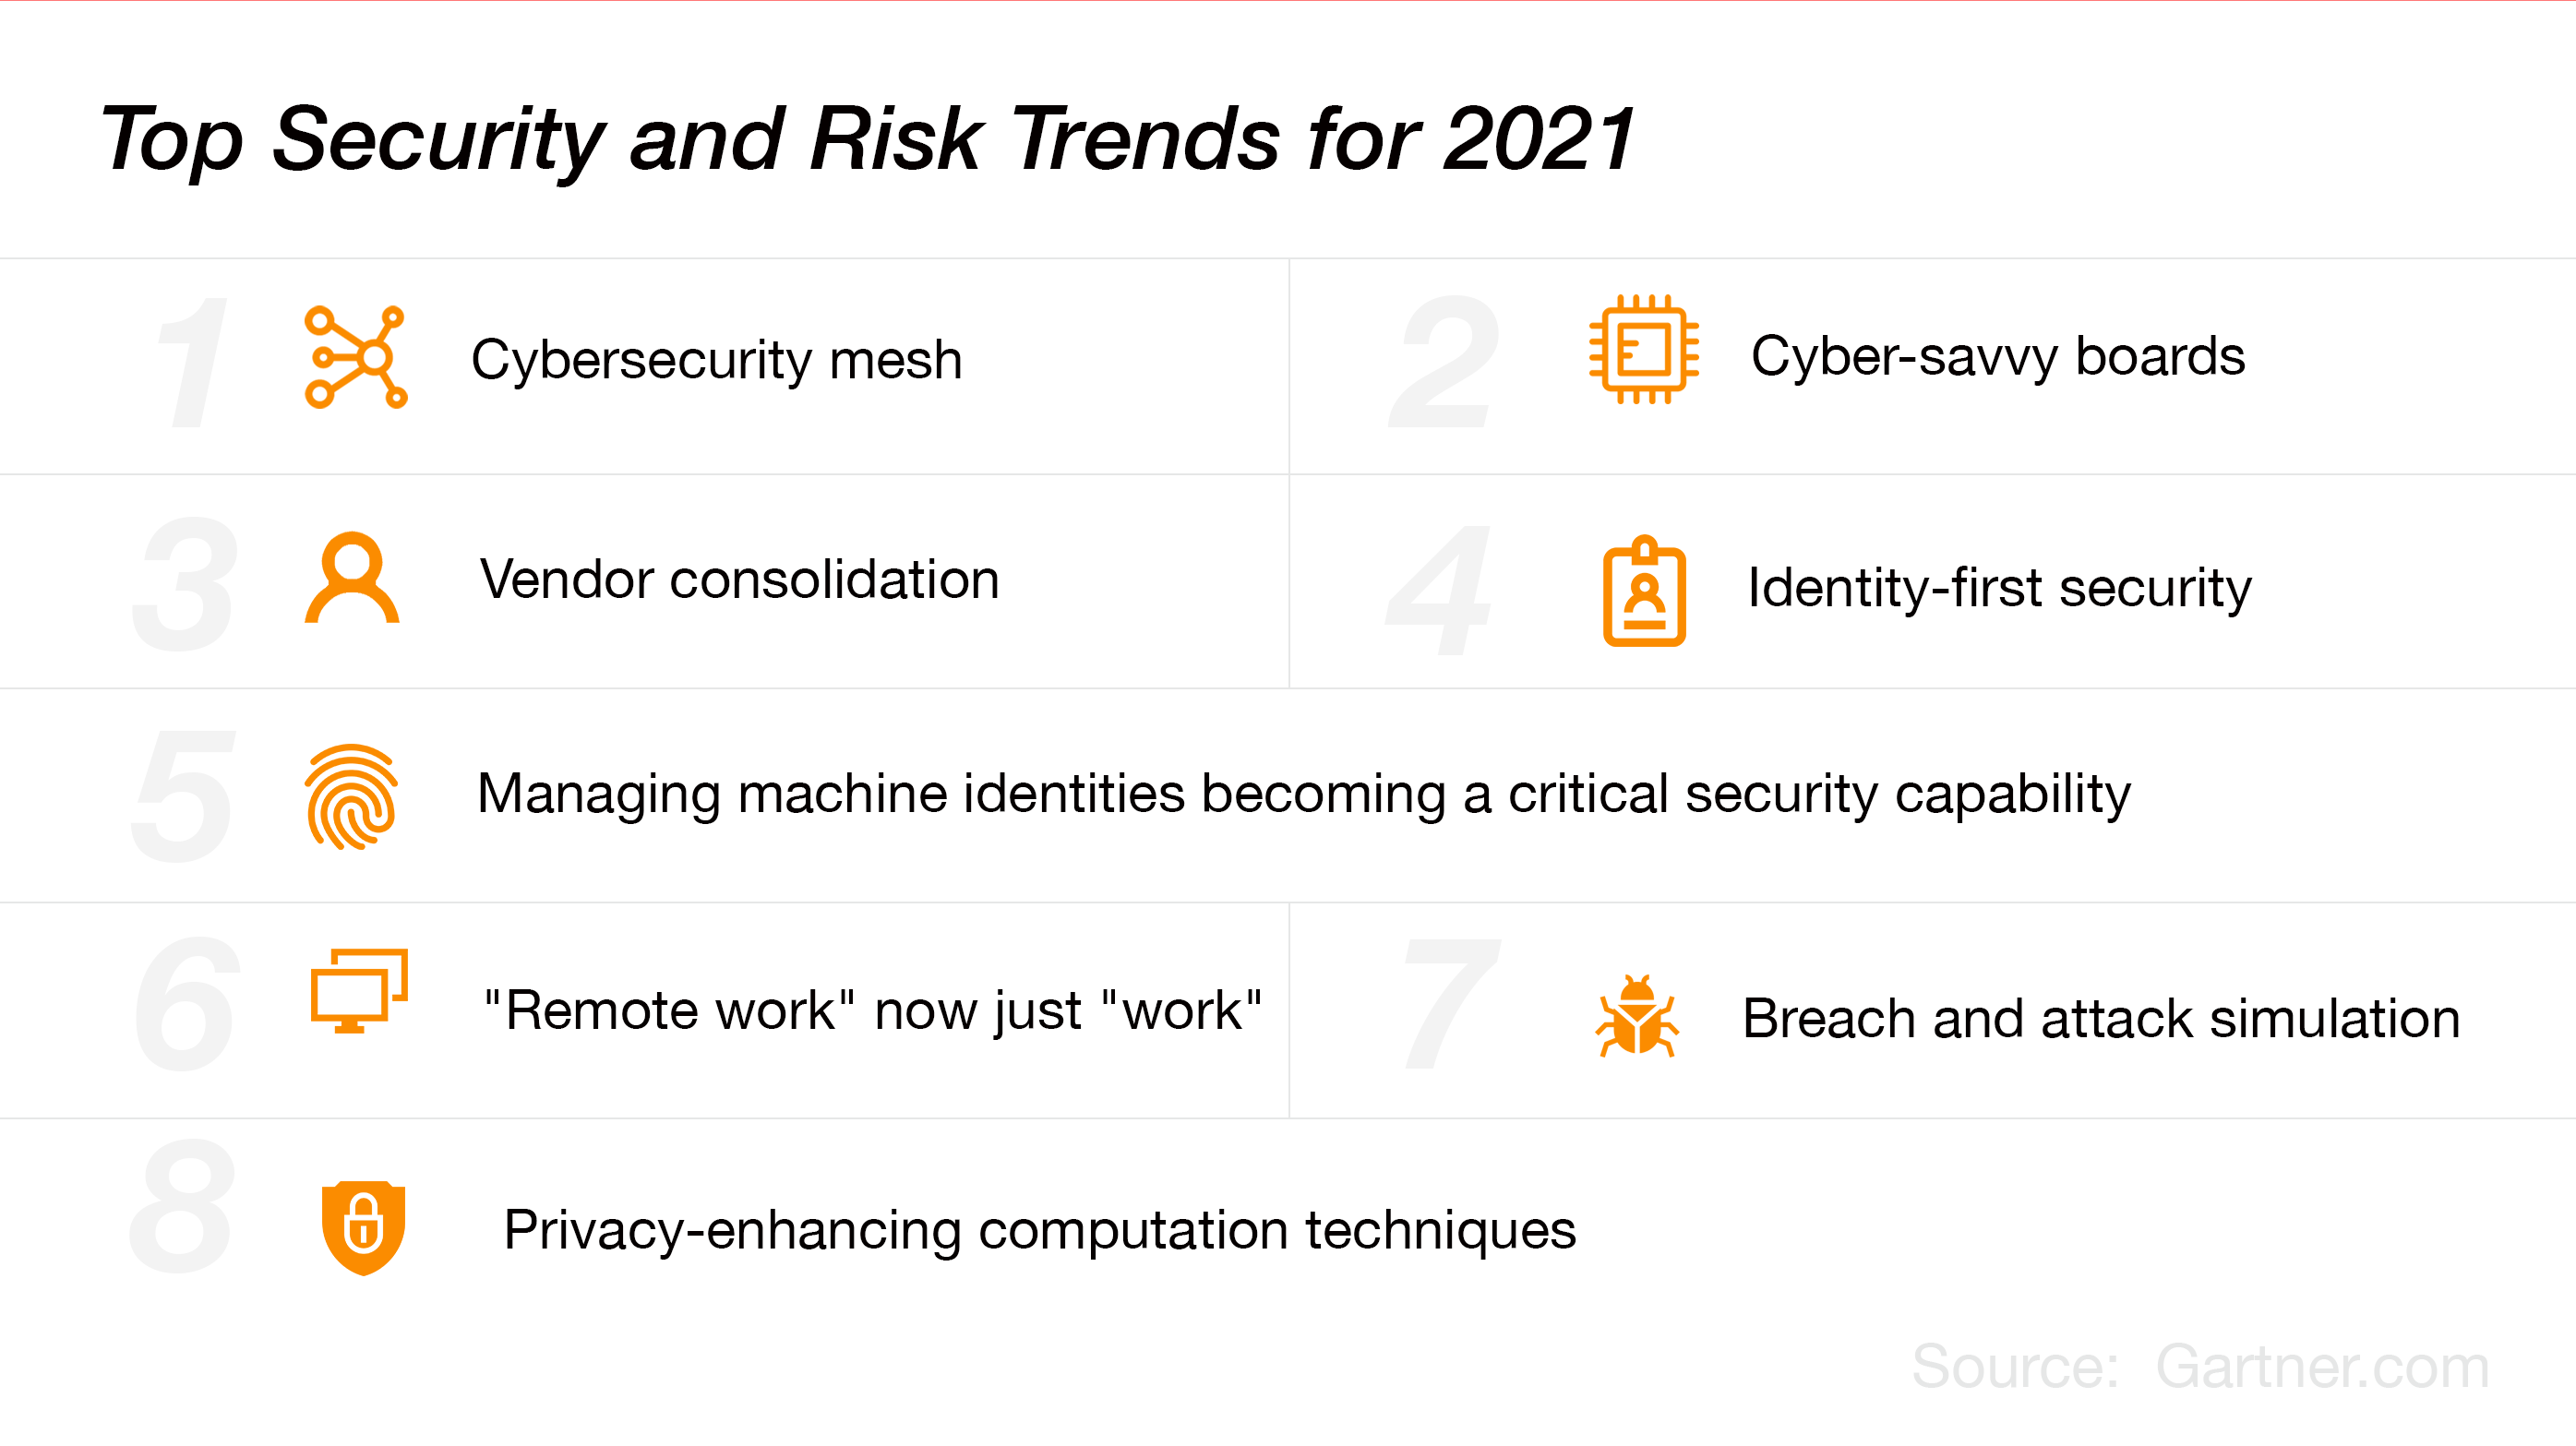 Top-Security-and-Risk-Trends-for-2021